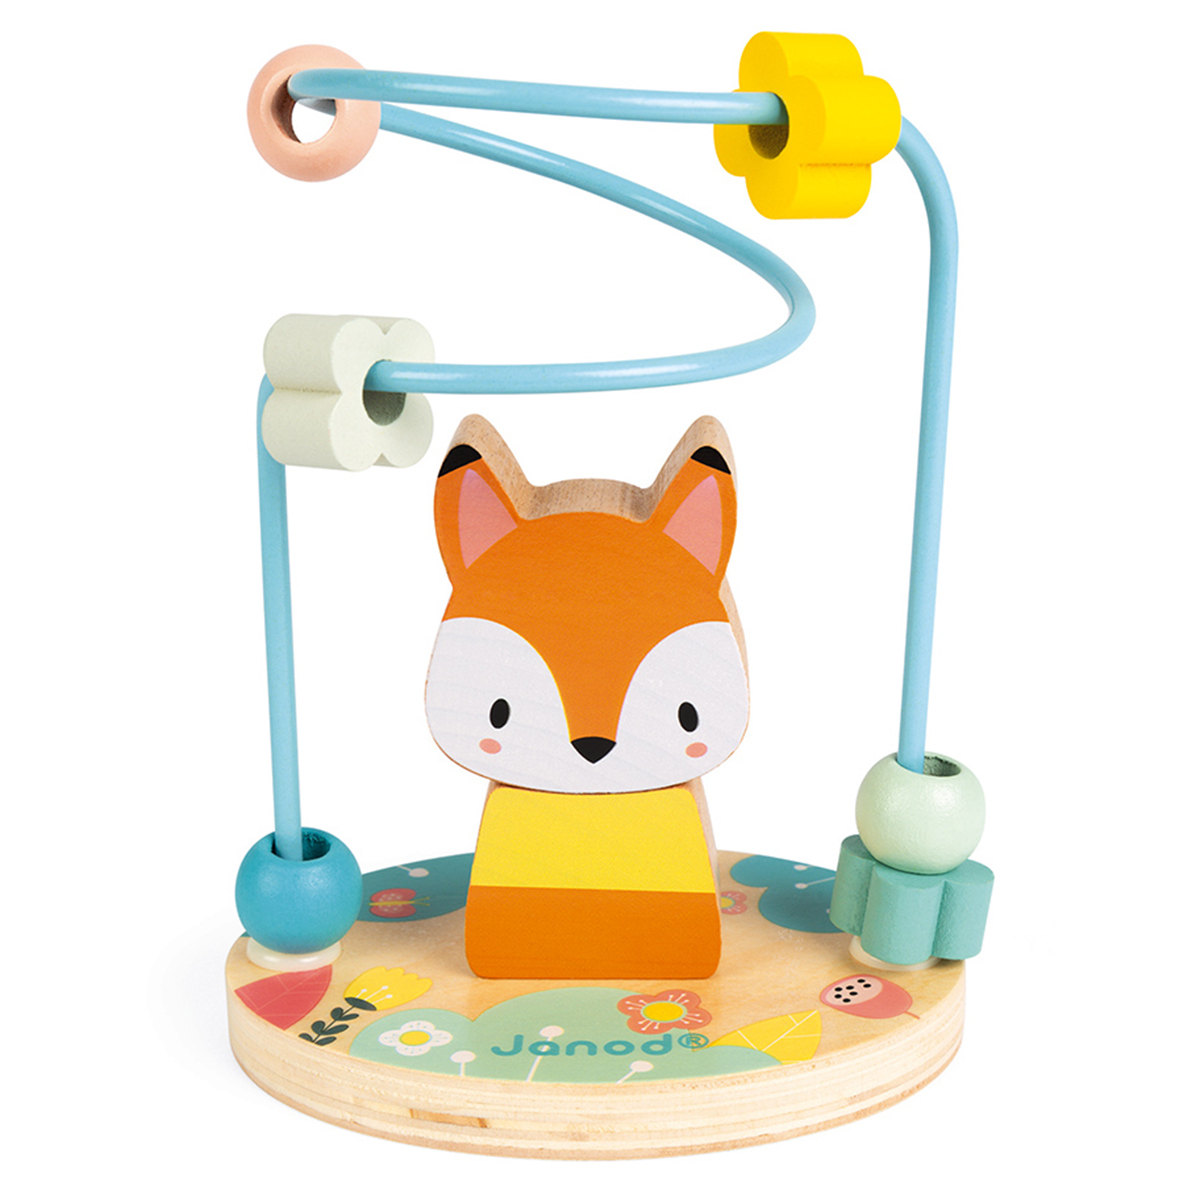 Mes premiers jouets Looping Renard Pure Looping Renard Pure